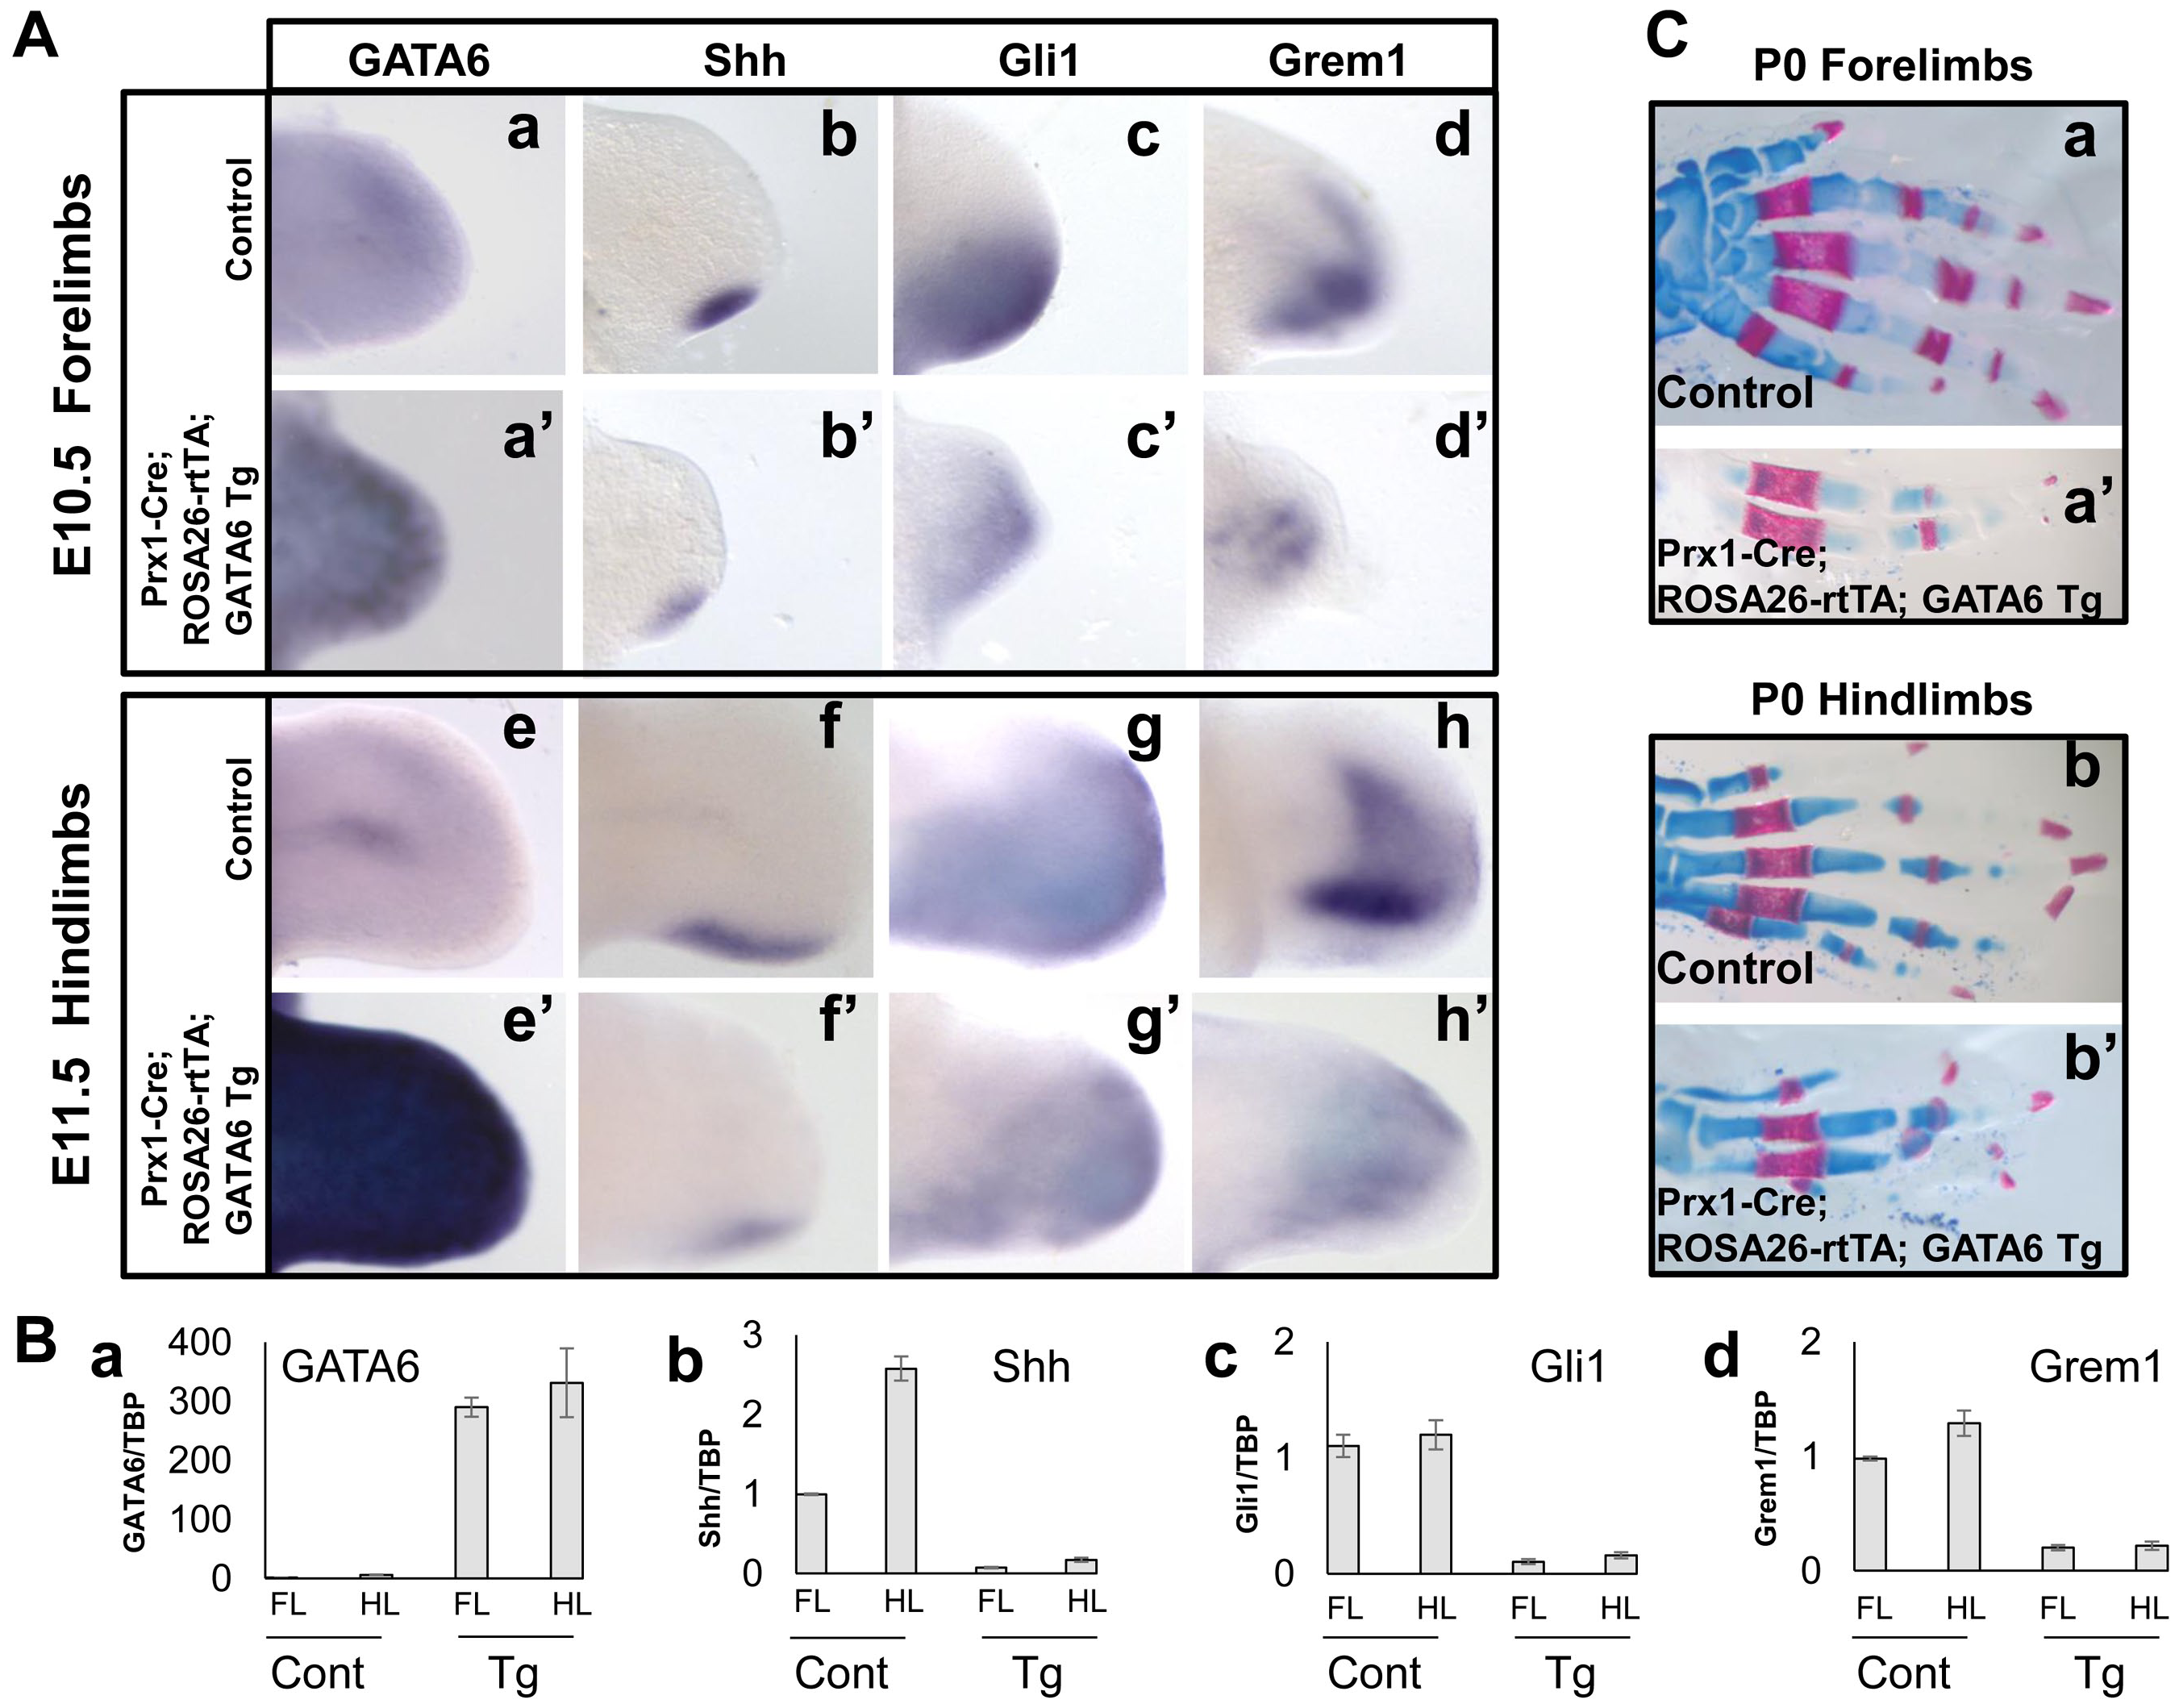 Transient forced expression of GATA6 throughout the developing limb bud represses induction of Shh, Gli1, and Grem1, and results in loss of digits.